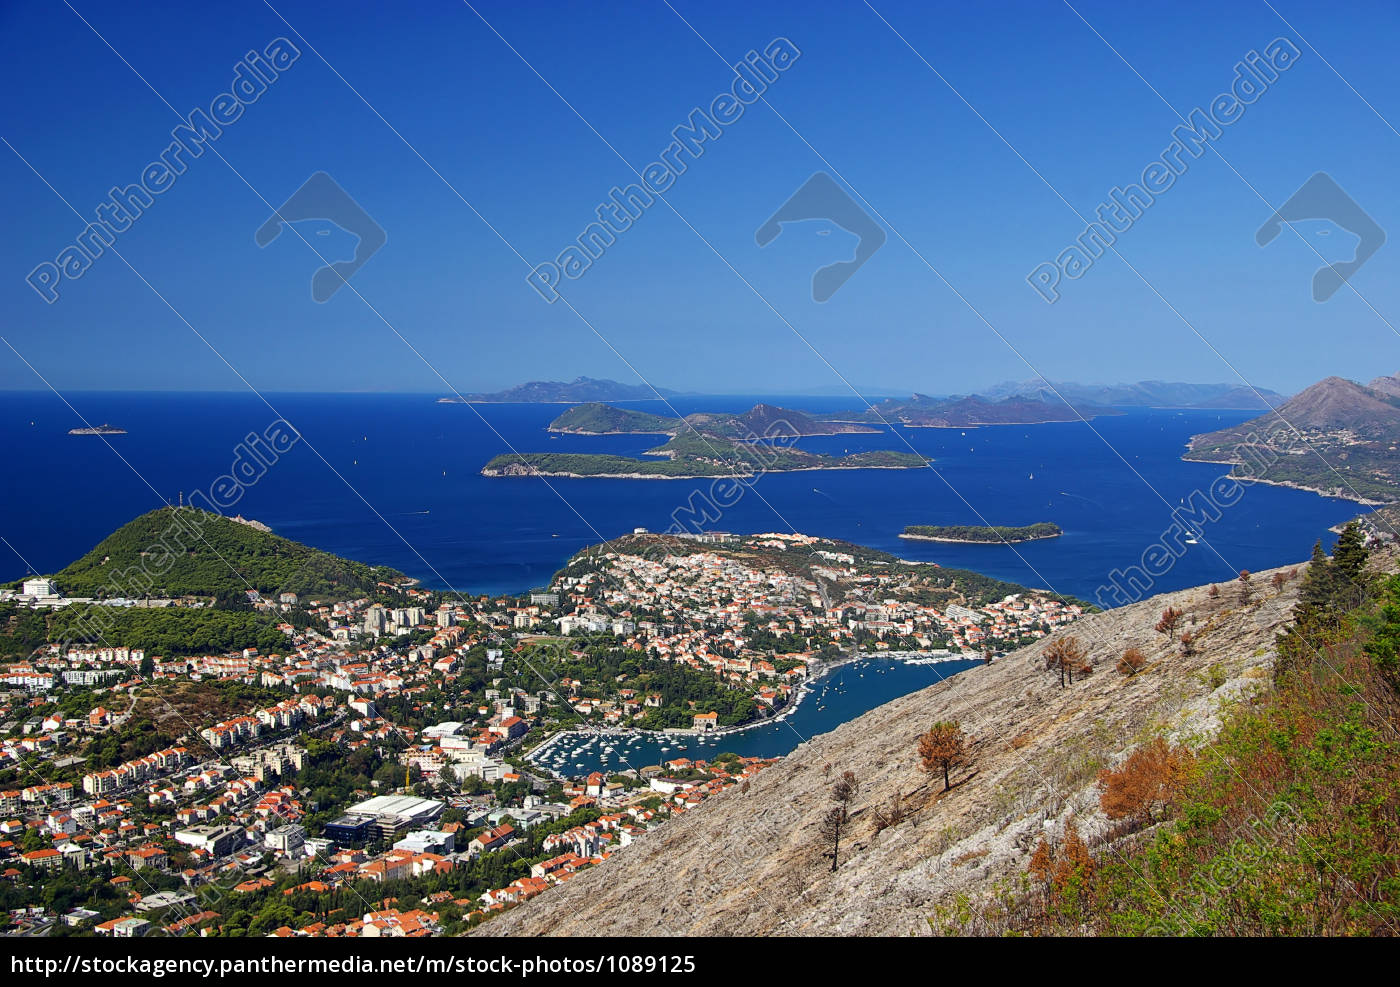 dubrovnik, from, above, 36 - 1089125